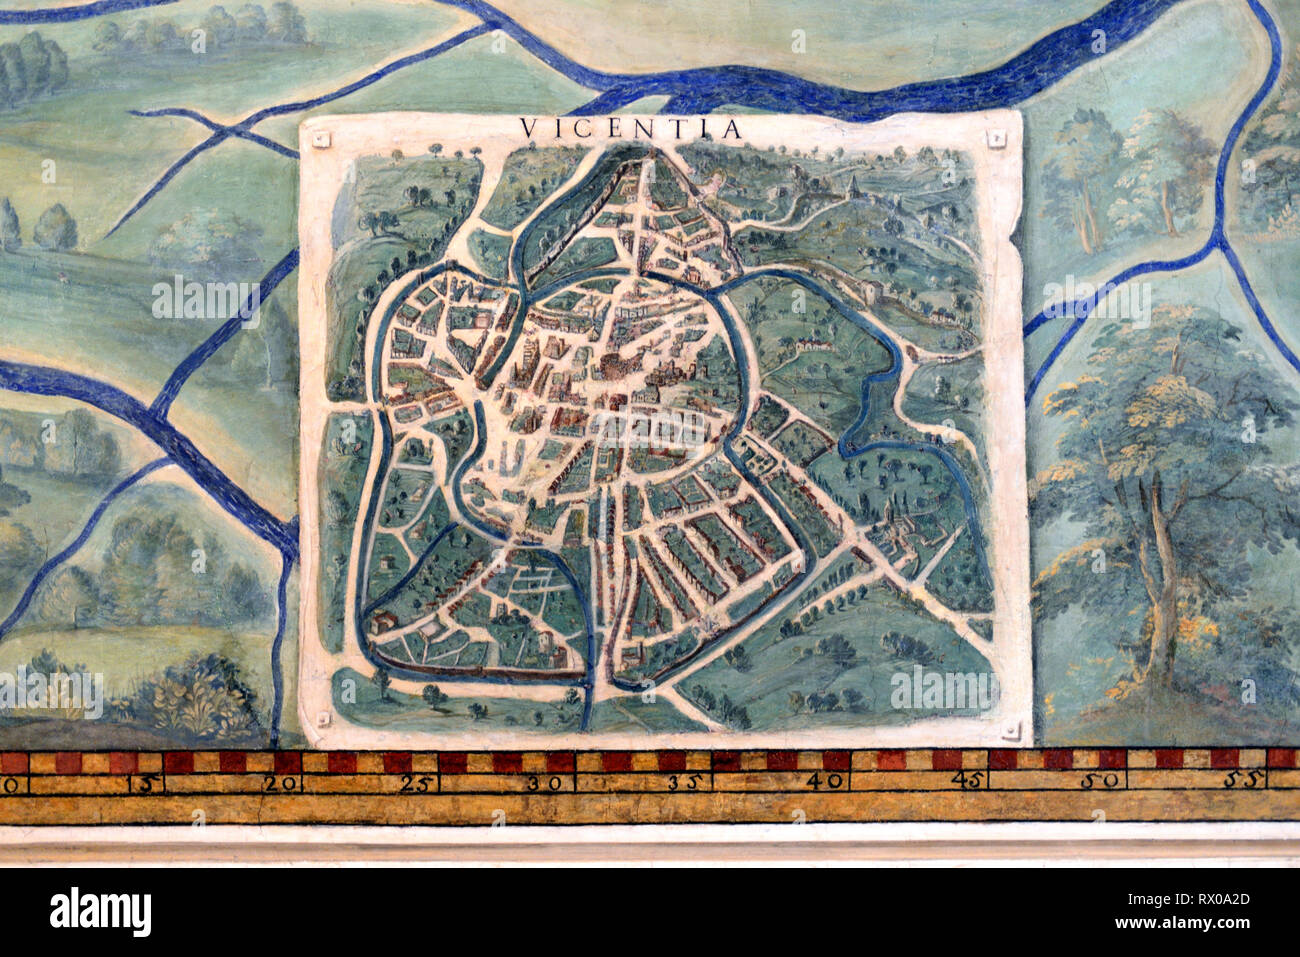 Town Plan or Old Map of Vicenza, Italy. Fresco or Wall Painting in Gallery of Maps (1580-83) based on Drawings by Ignazio Danti Vatican Museums - Stock Image